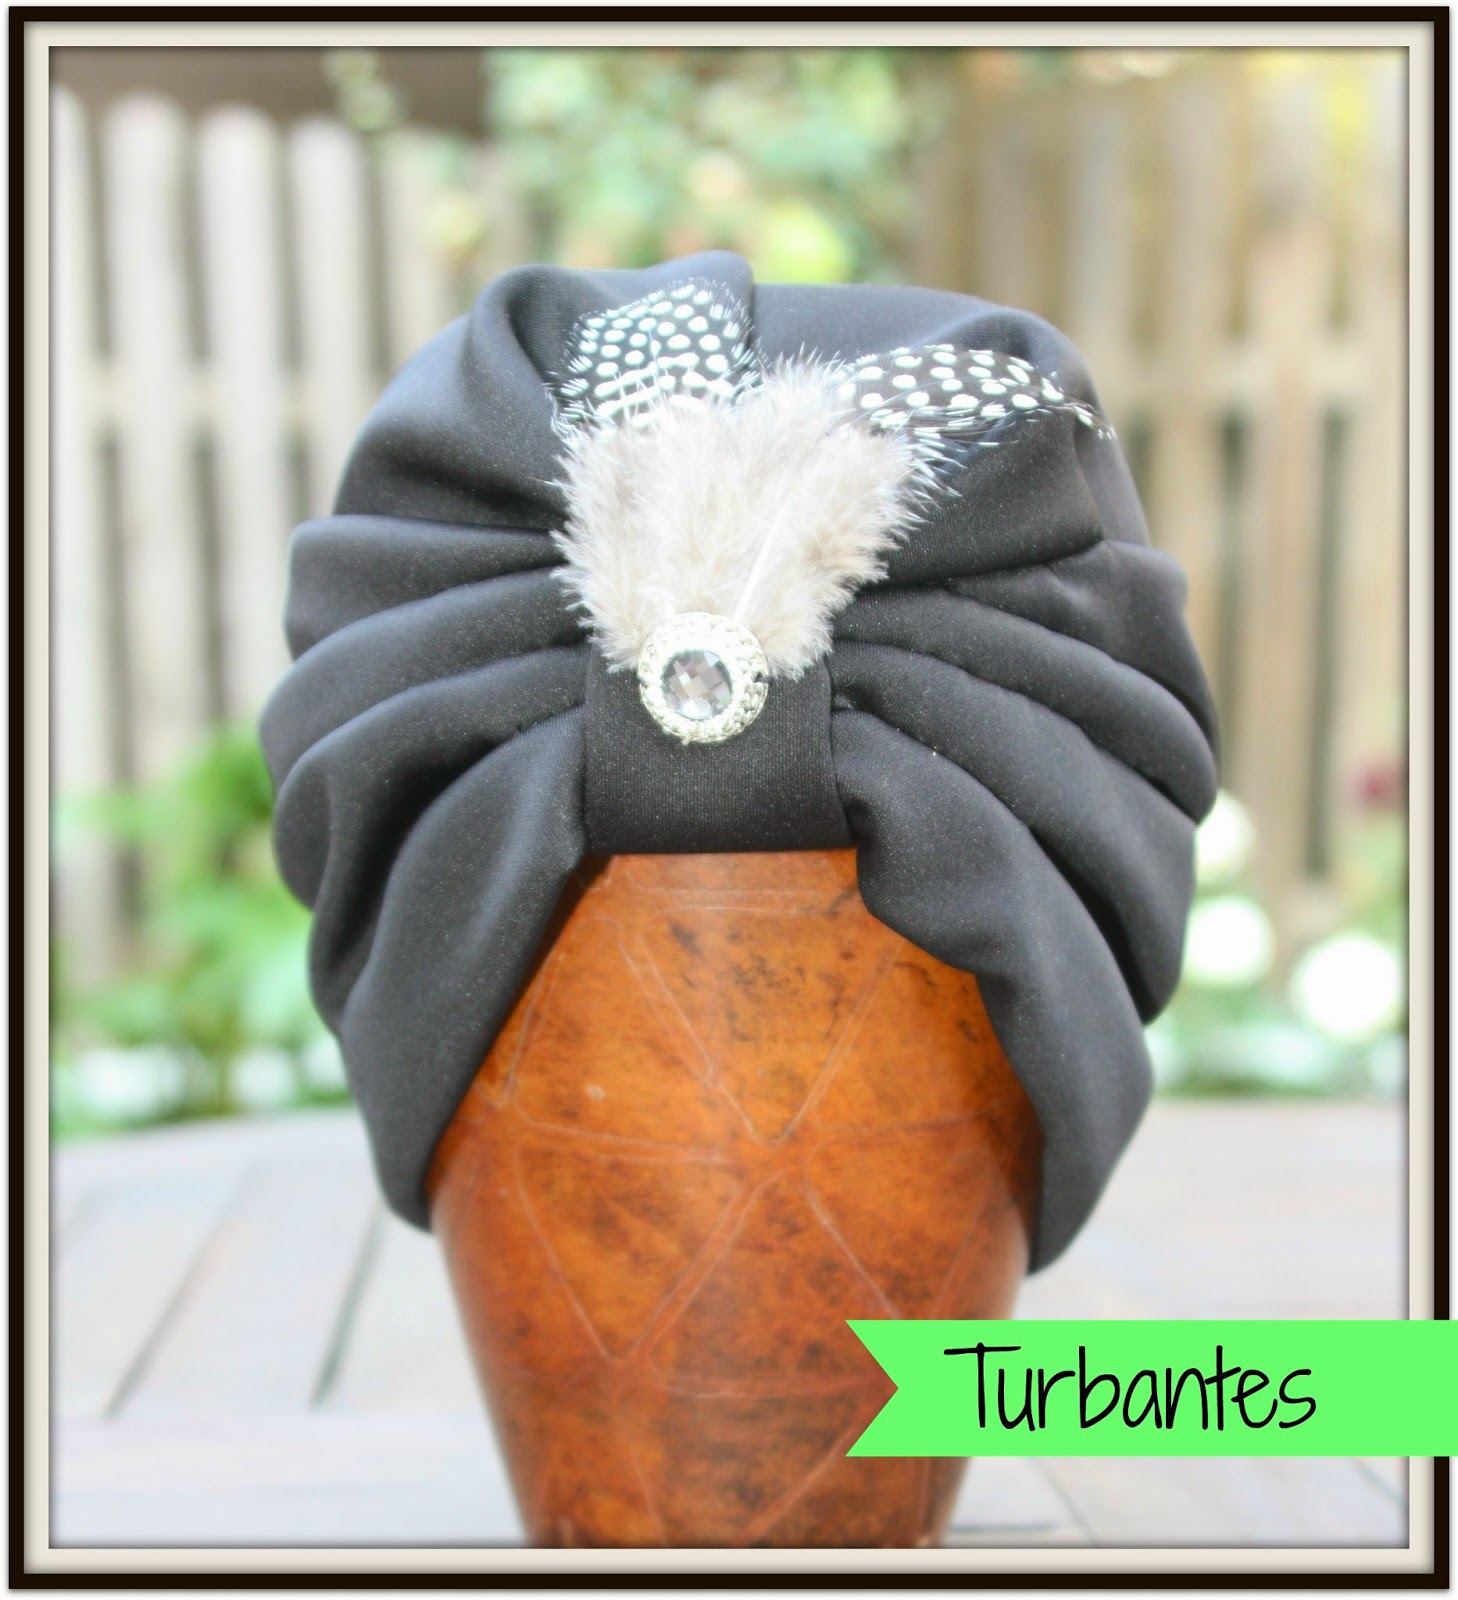 http://sandungacomplementos.blogspot.com.es/search/label/Turbante